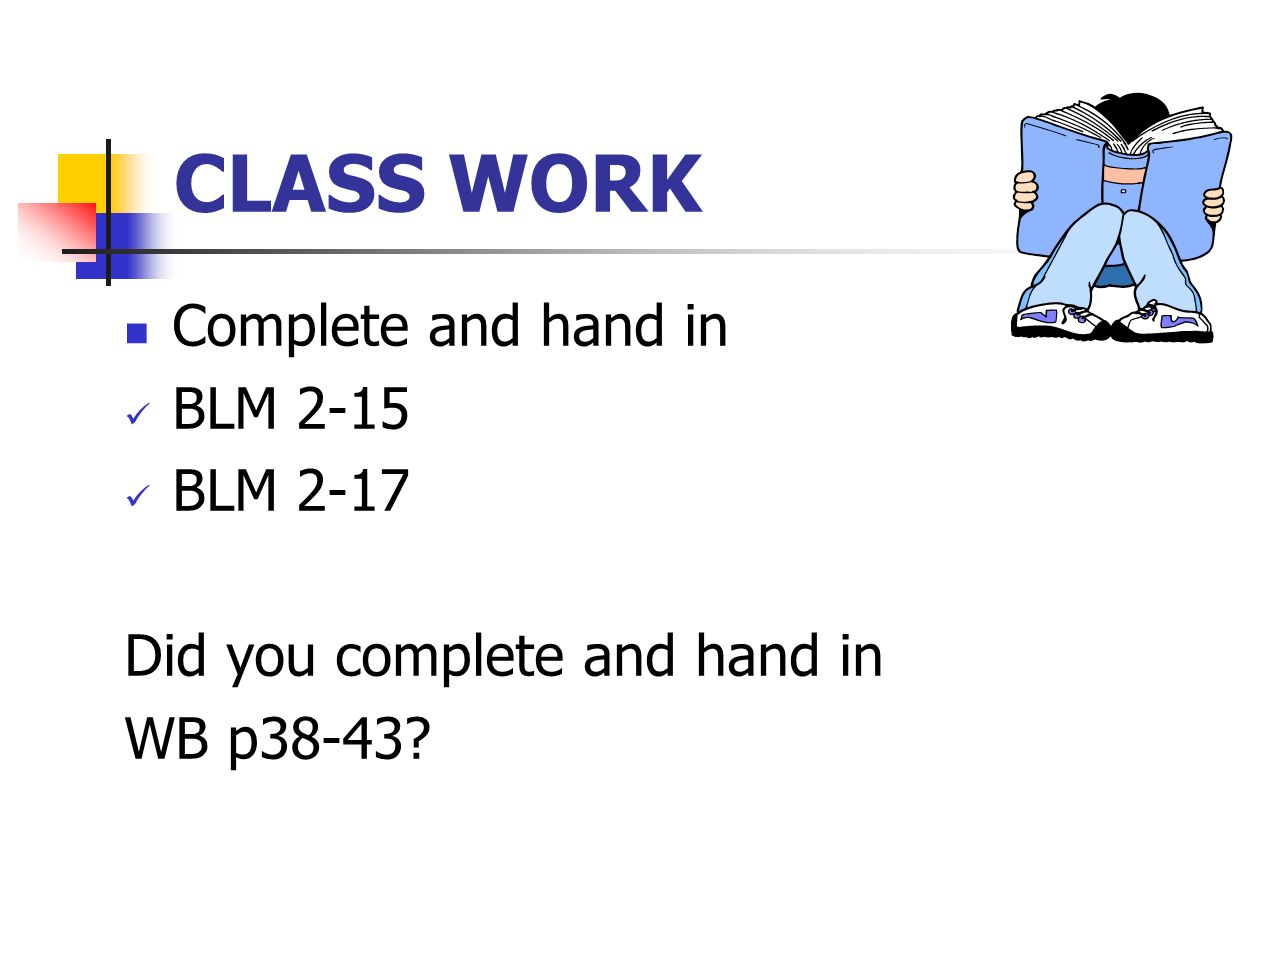 CLASS WORK Complete and hand in BLM 2-15 BLM 2-17 Did you complete and hand in WB p38-43